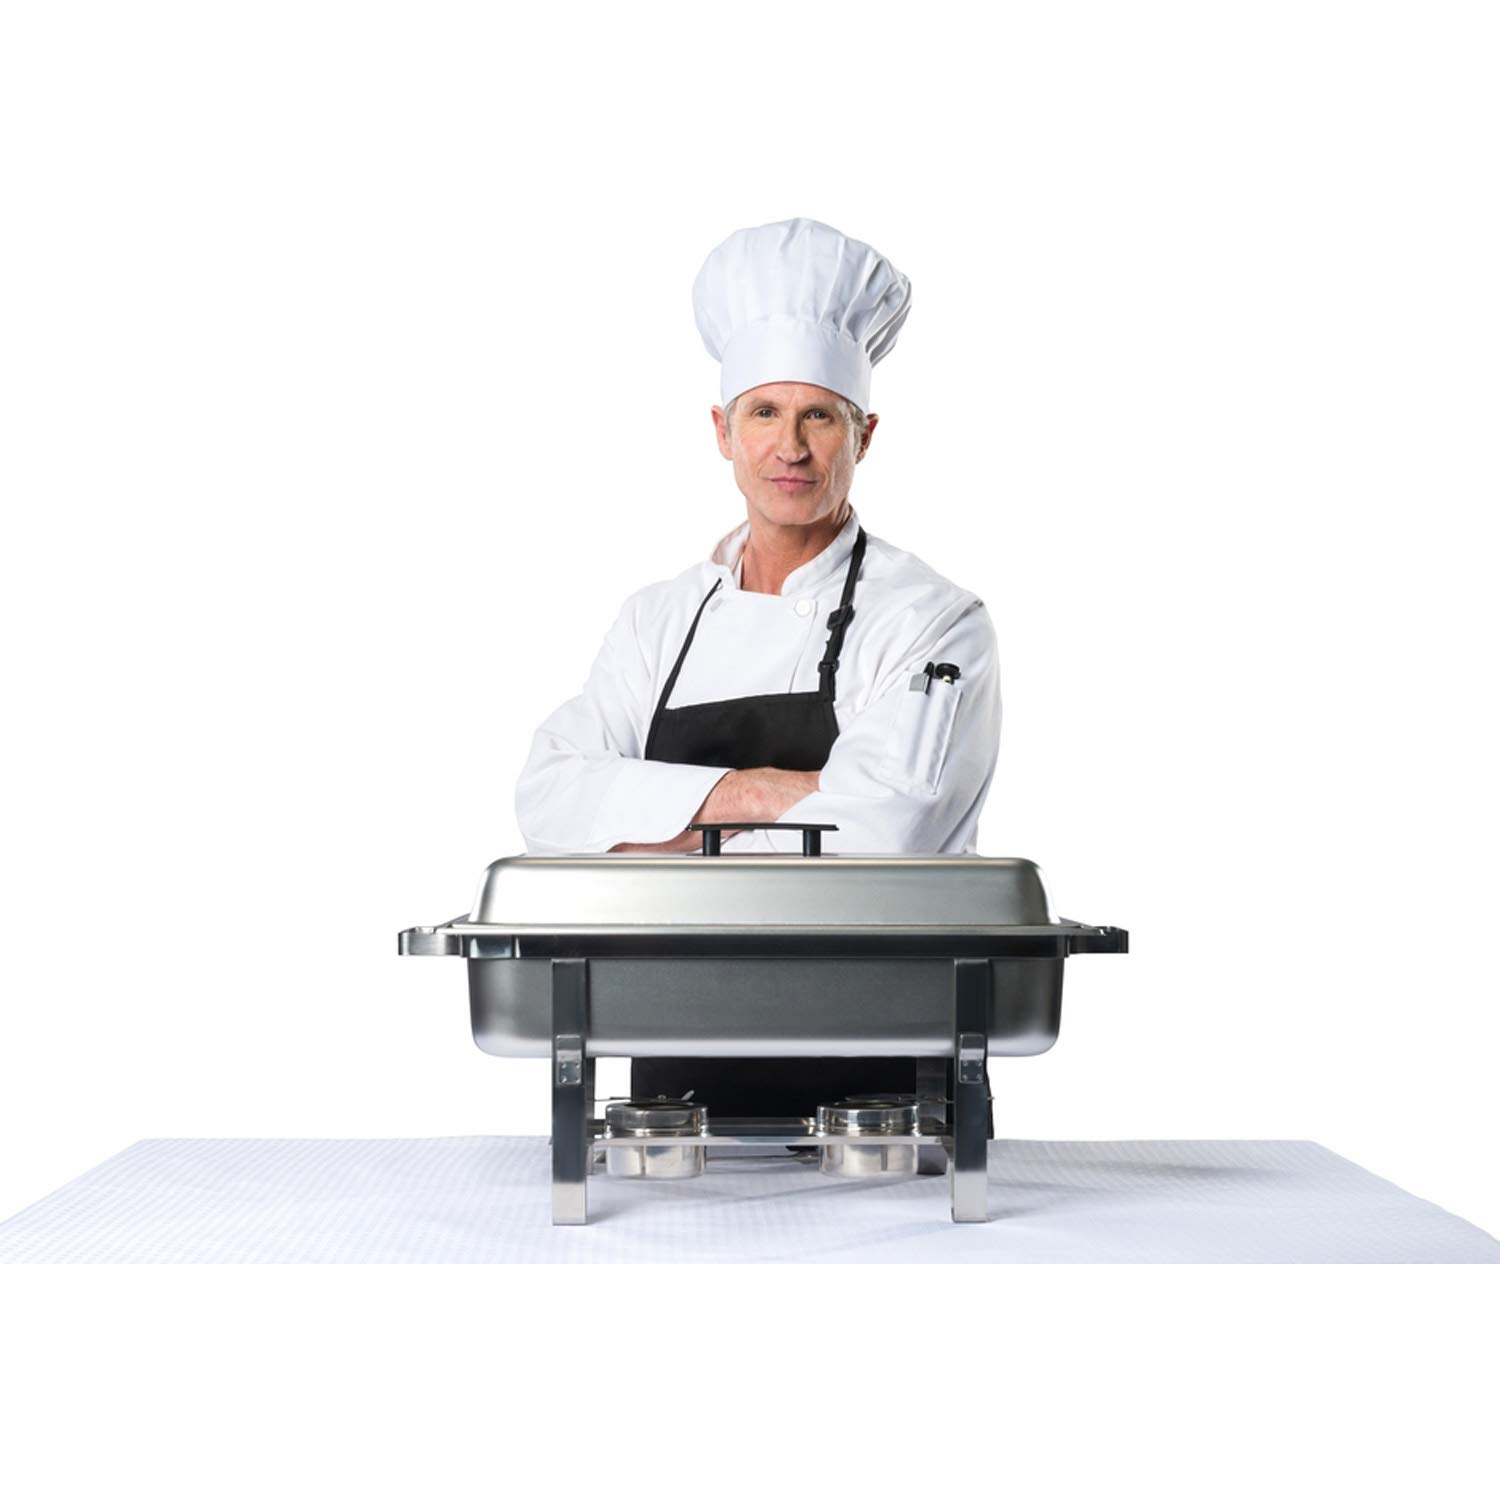 Chafing Dish Buffet Set w/Fuel - Folding Frame + Water Pan + Food Pan (8 qt) + 6 Fuel Holders + 6 Fuel Cans - 3 Full Warmer Kit, Stainless Steel Construction. by HeroFiber (Image #7)